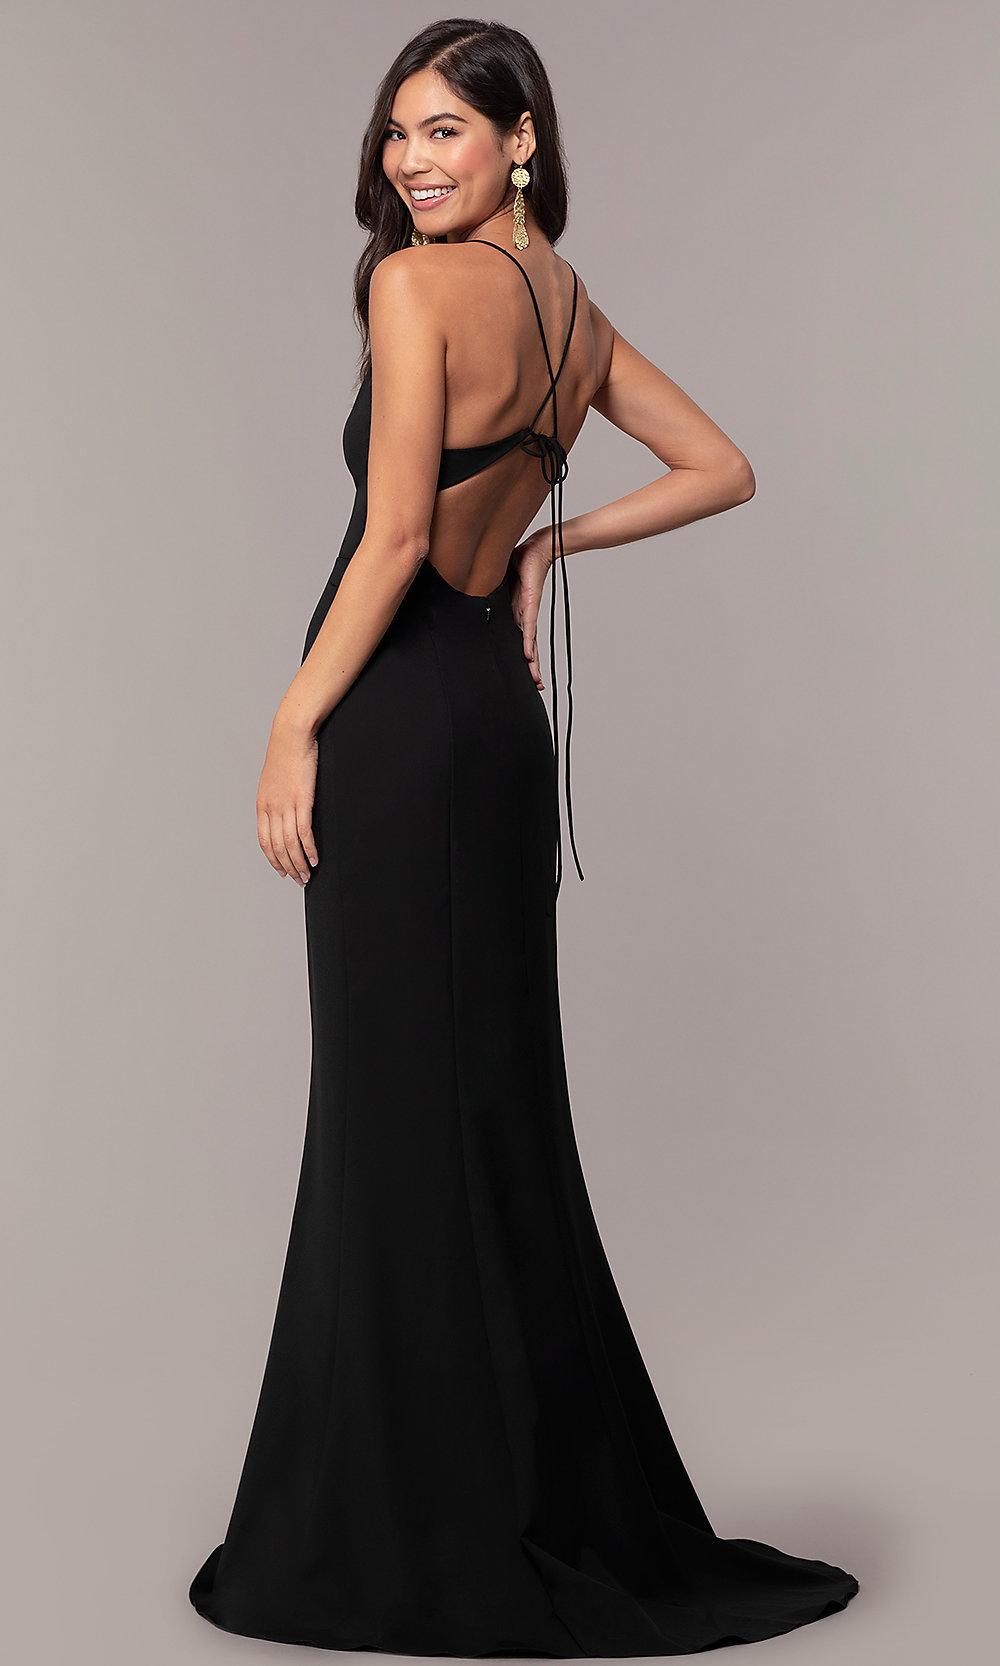 da35d158b10 Image of long formal open-back v-neck prom dress by Simply. Style. Tap to  expand